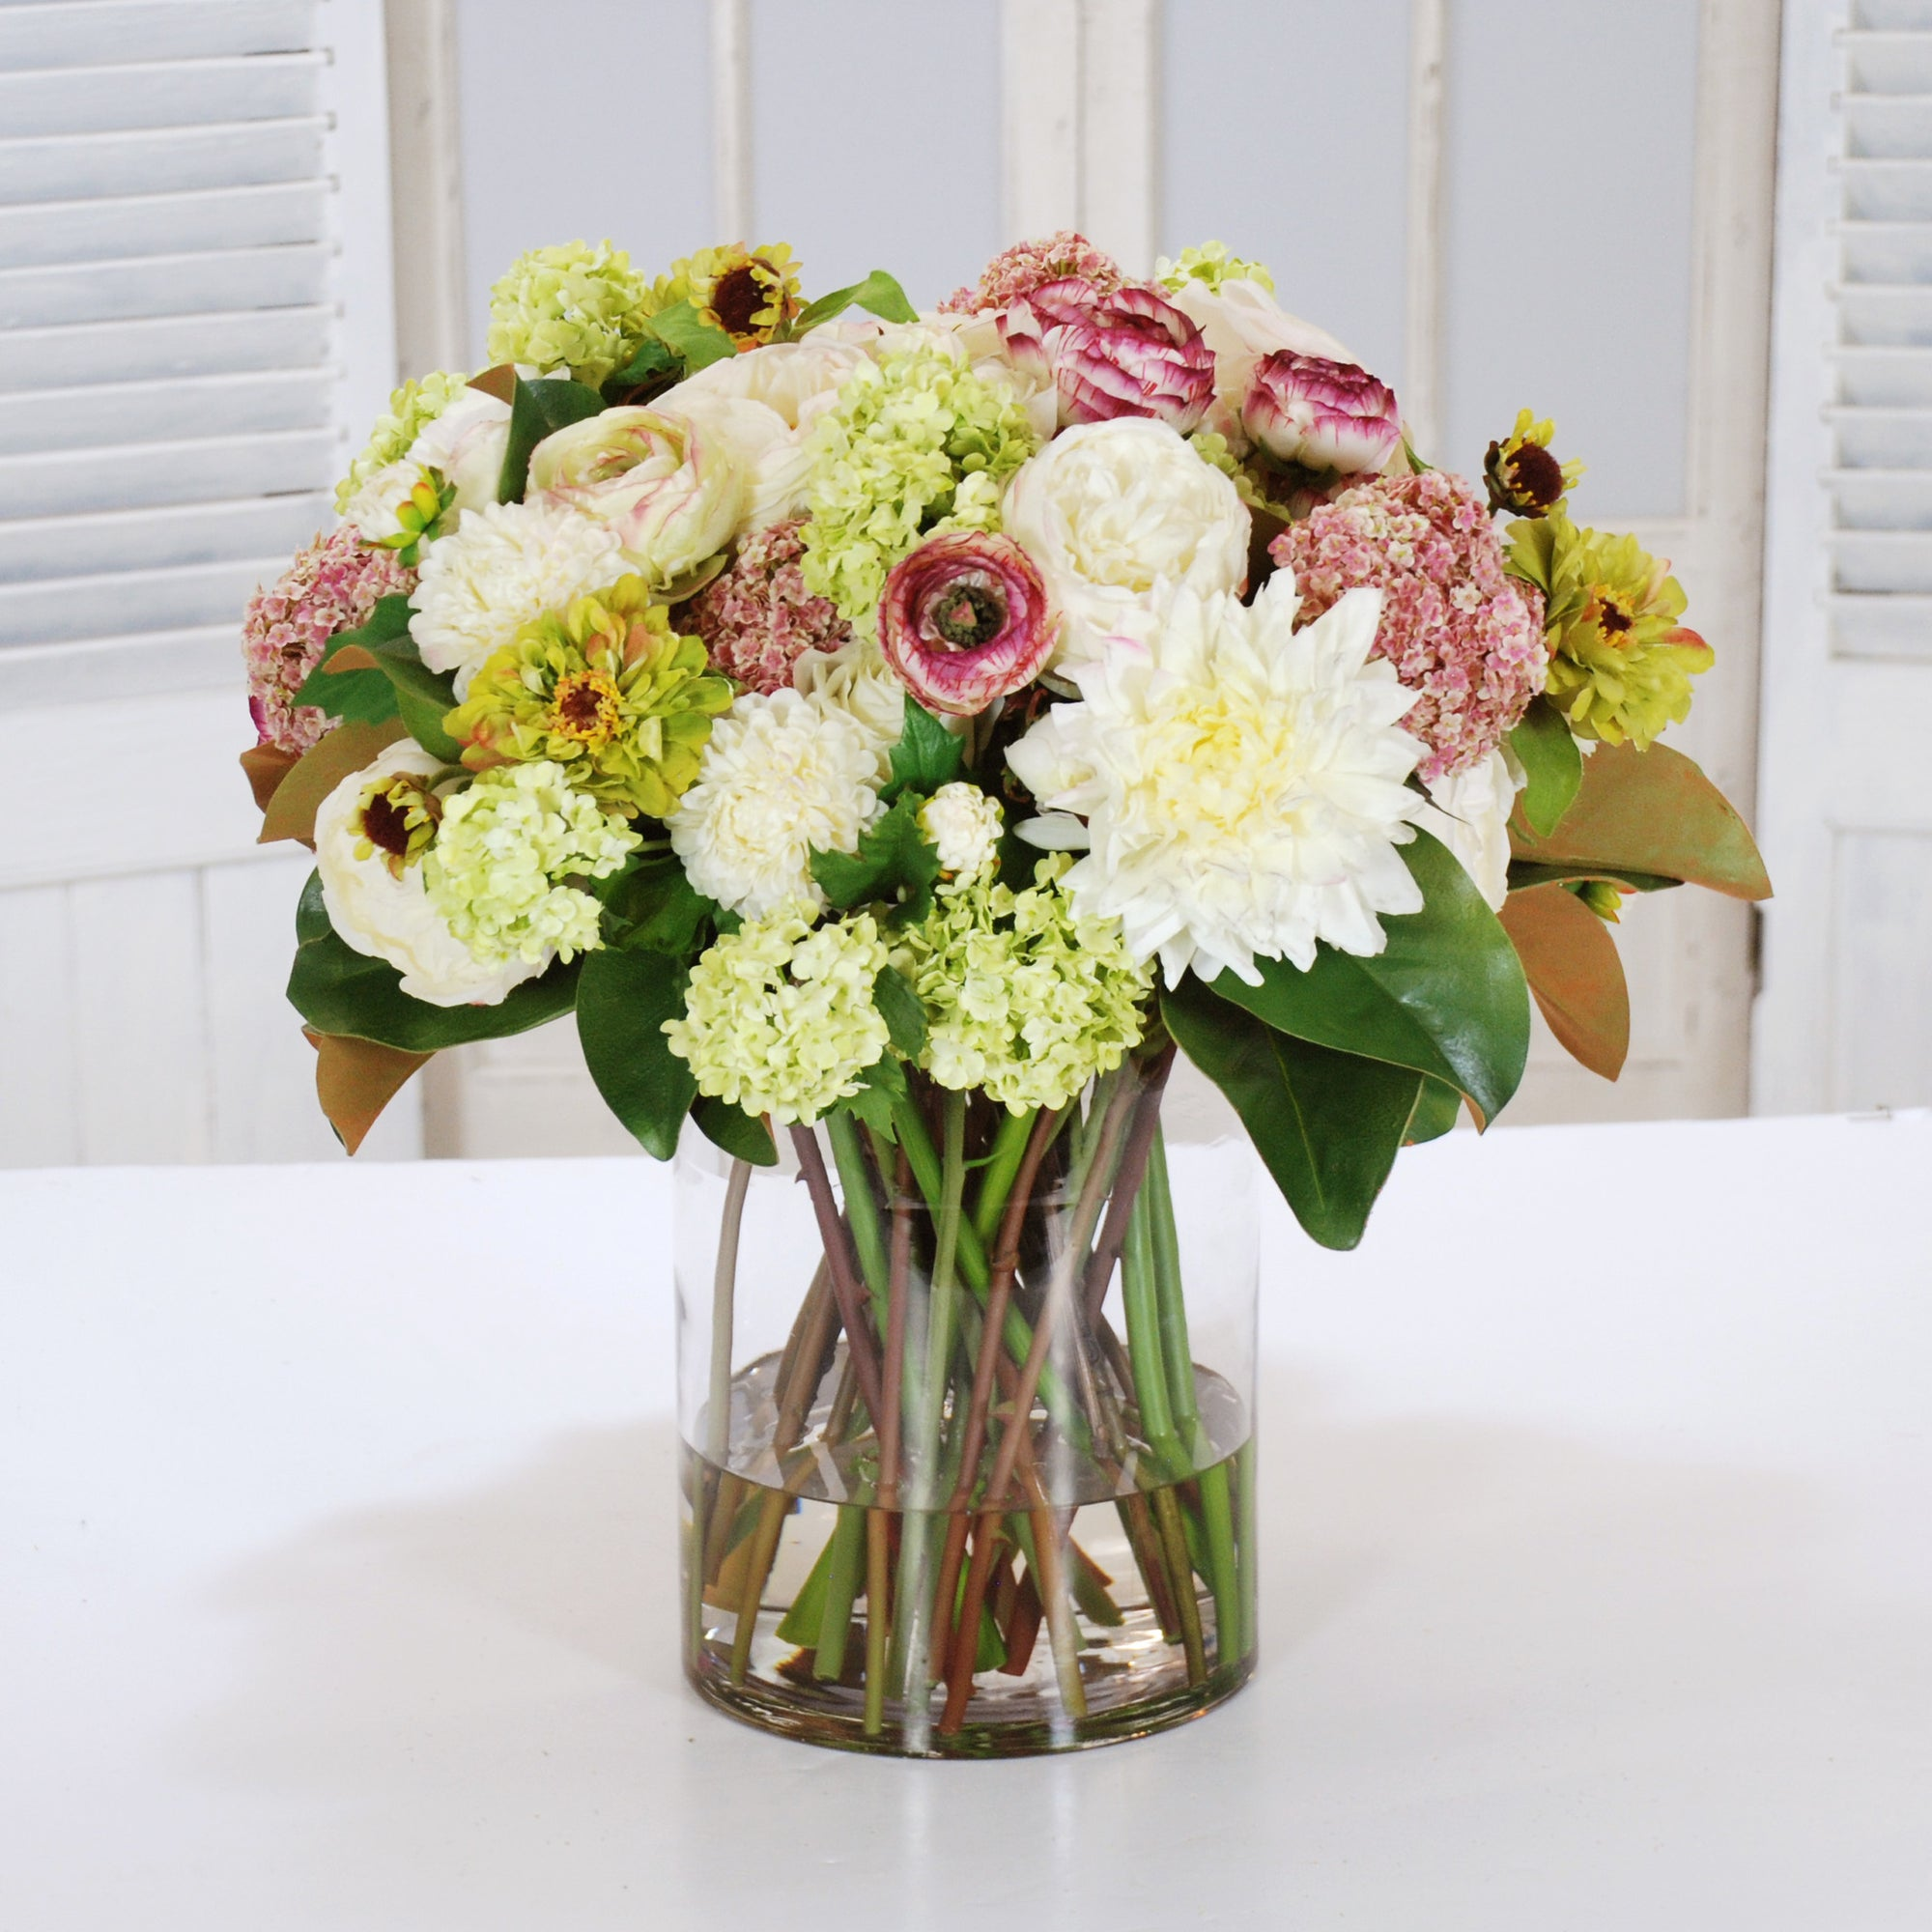 DAHLIA, RANUNCULUS & ROSE IN CYCLINDER VASE (WHD109-CHPK) - Winward Home faux floral arrangements